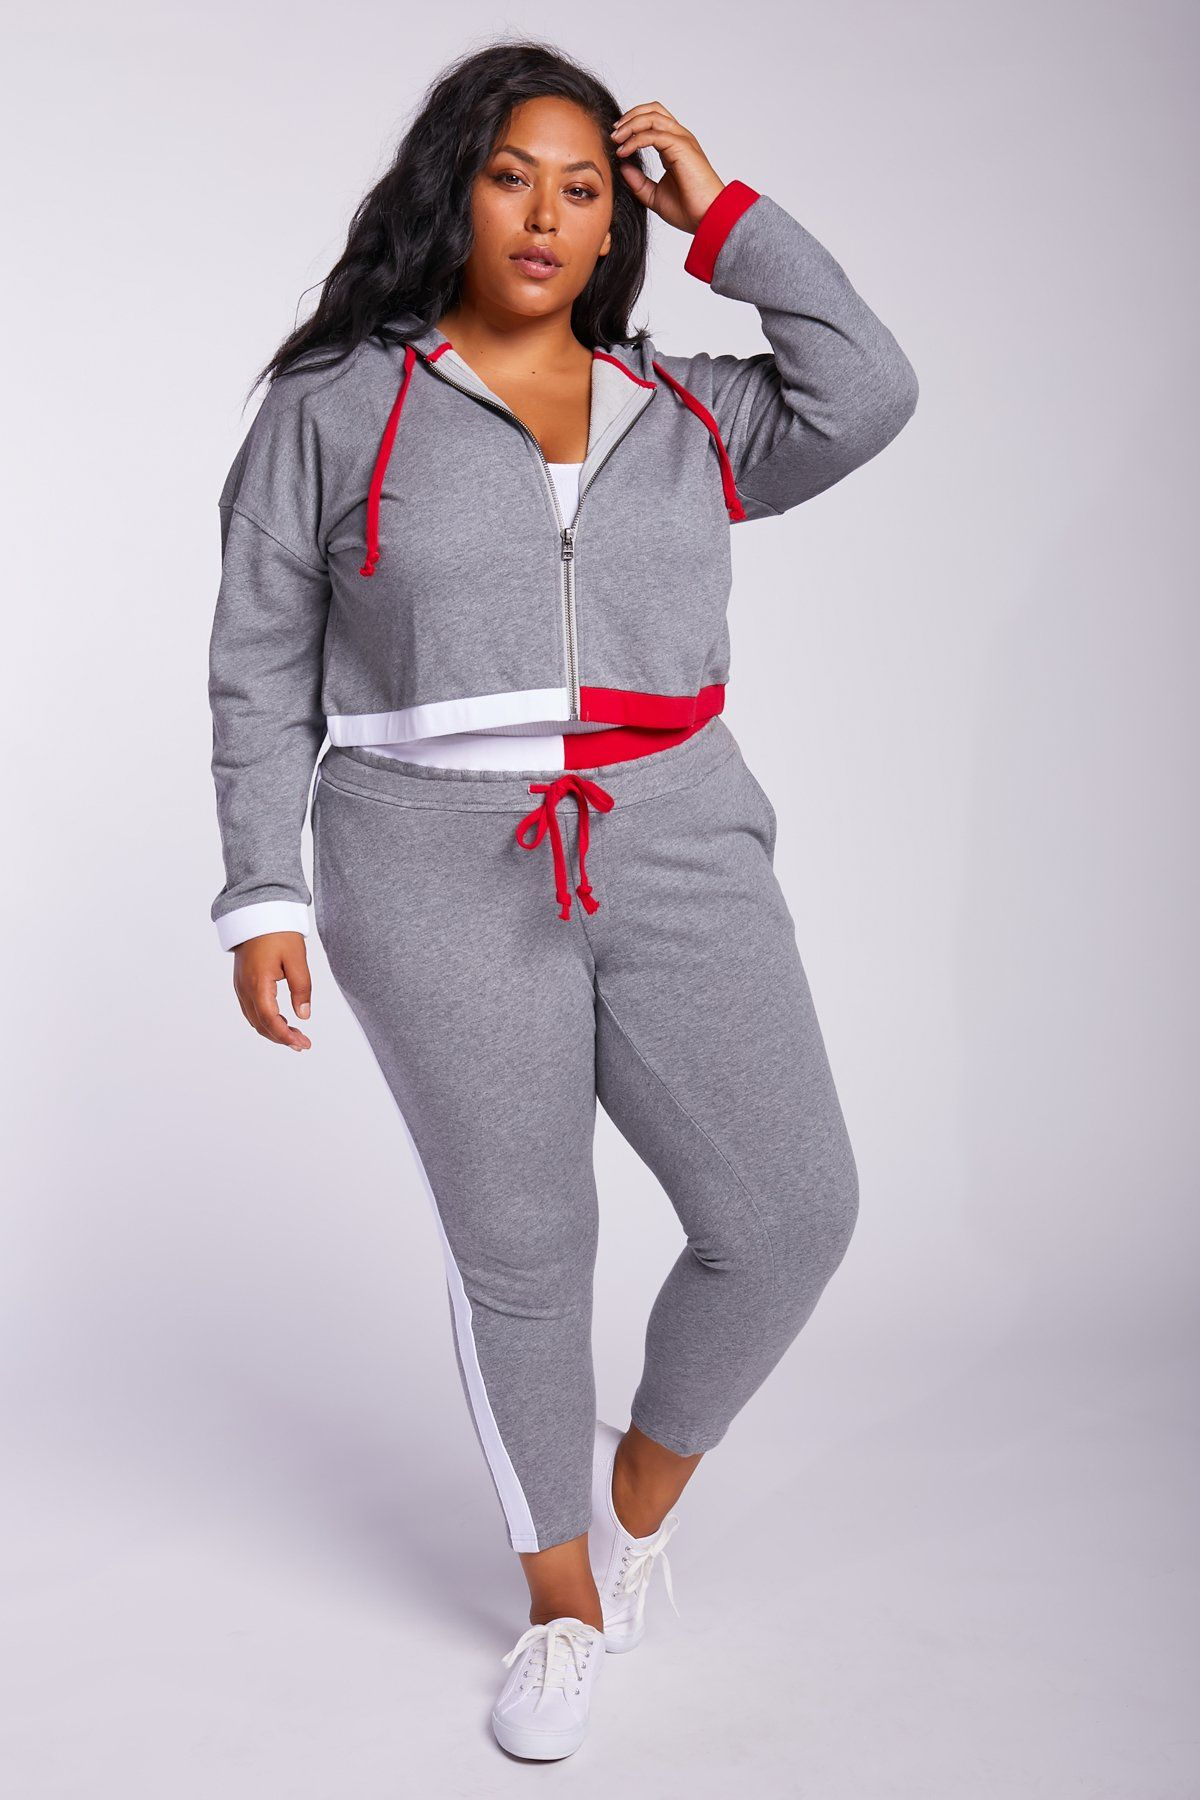 eaea32780e8 NEW Plus Size Women s Clothing Store  SONCY! - Fat Girl Flow